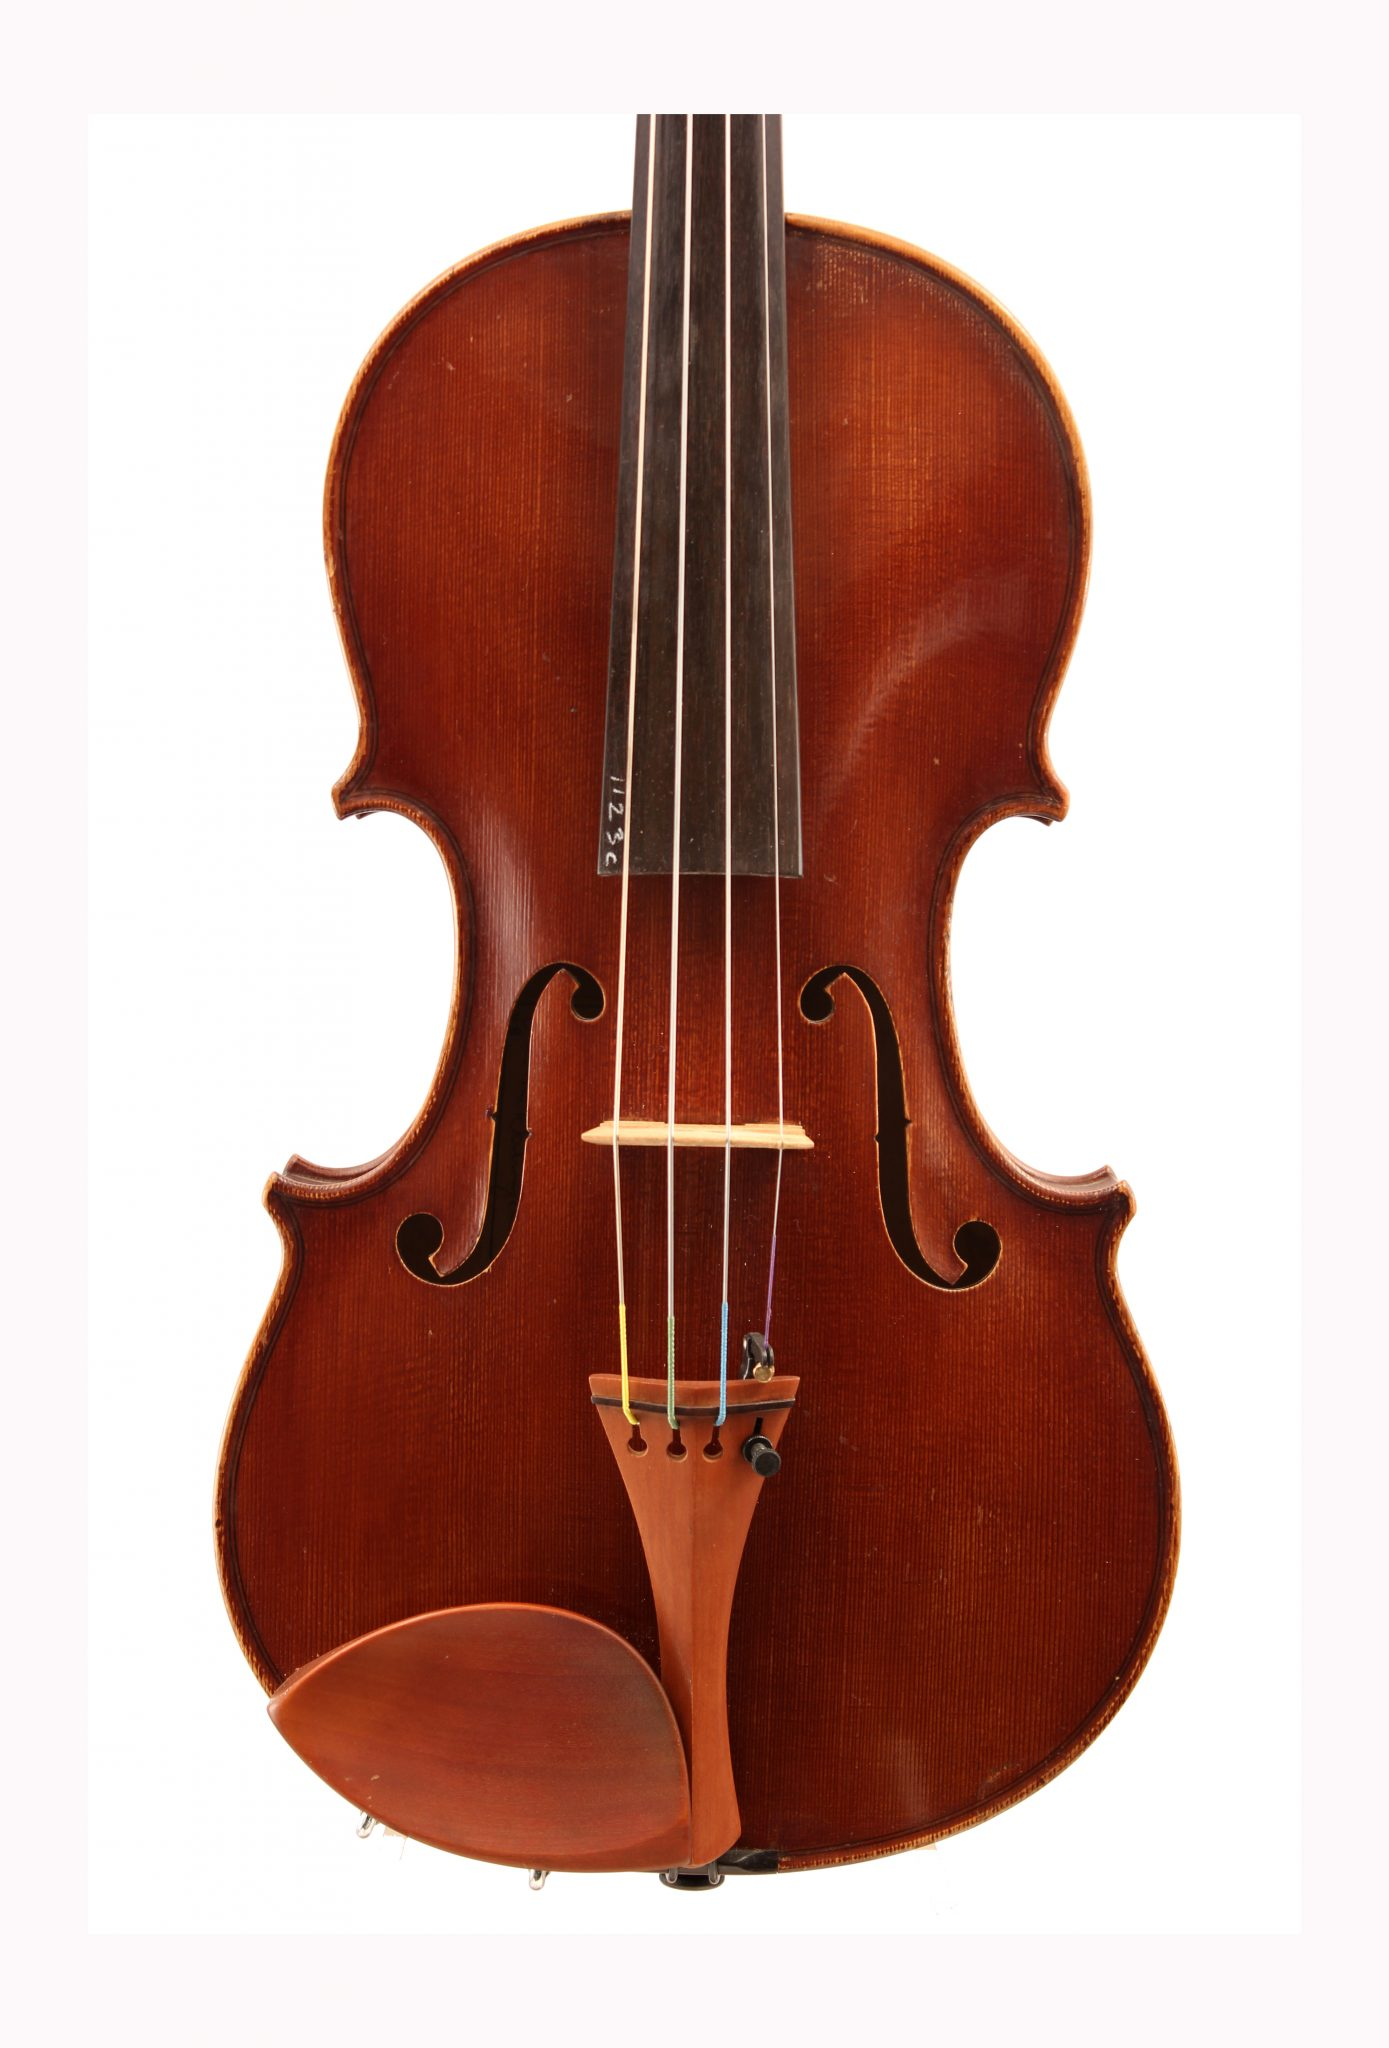 Violin by Alan Balmforth USA 1980 for sale at Bridgewood and Neitzert